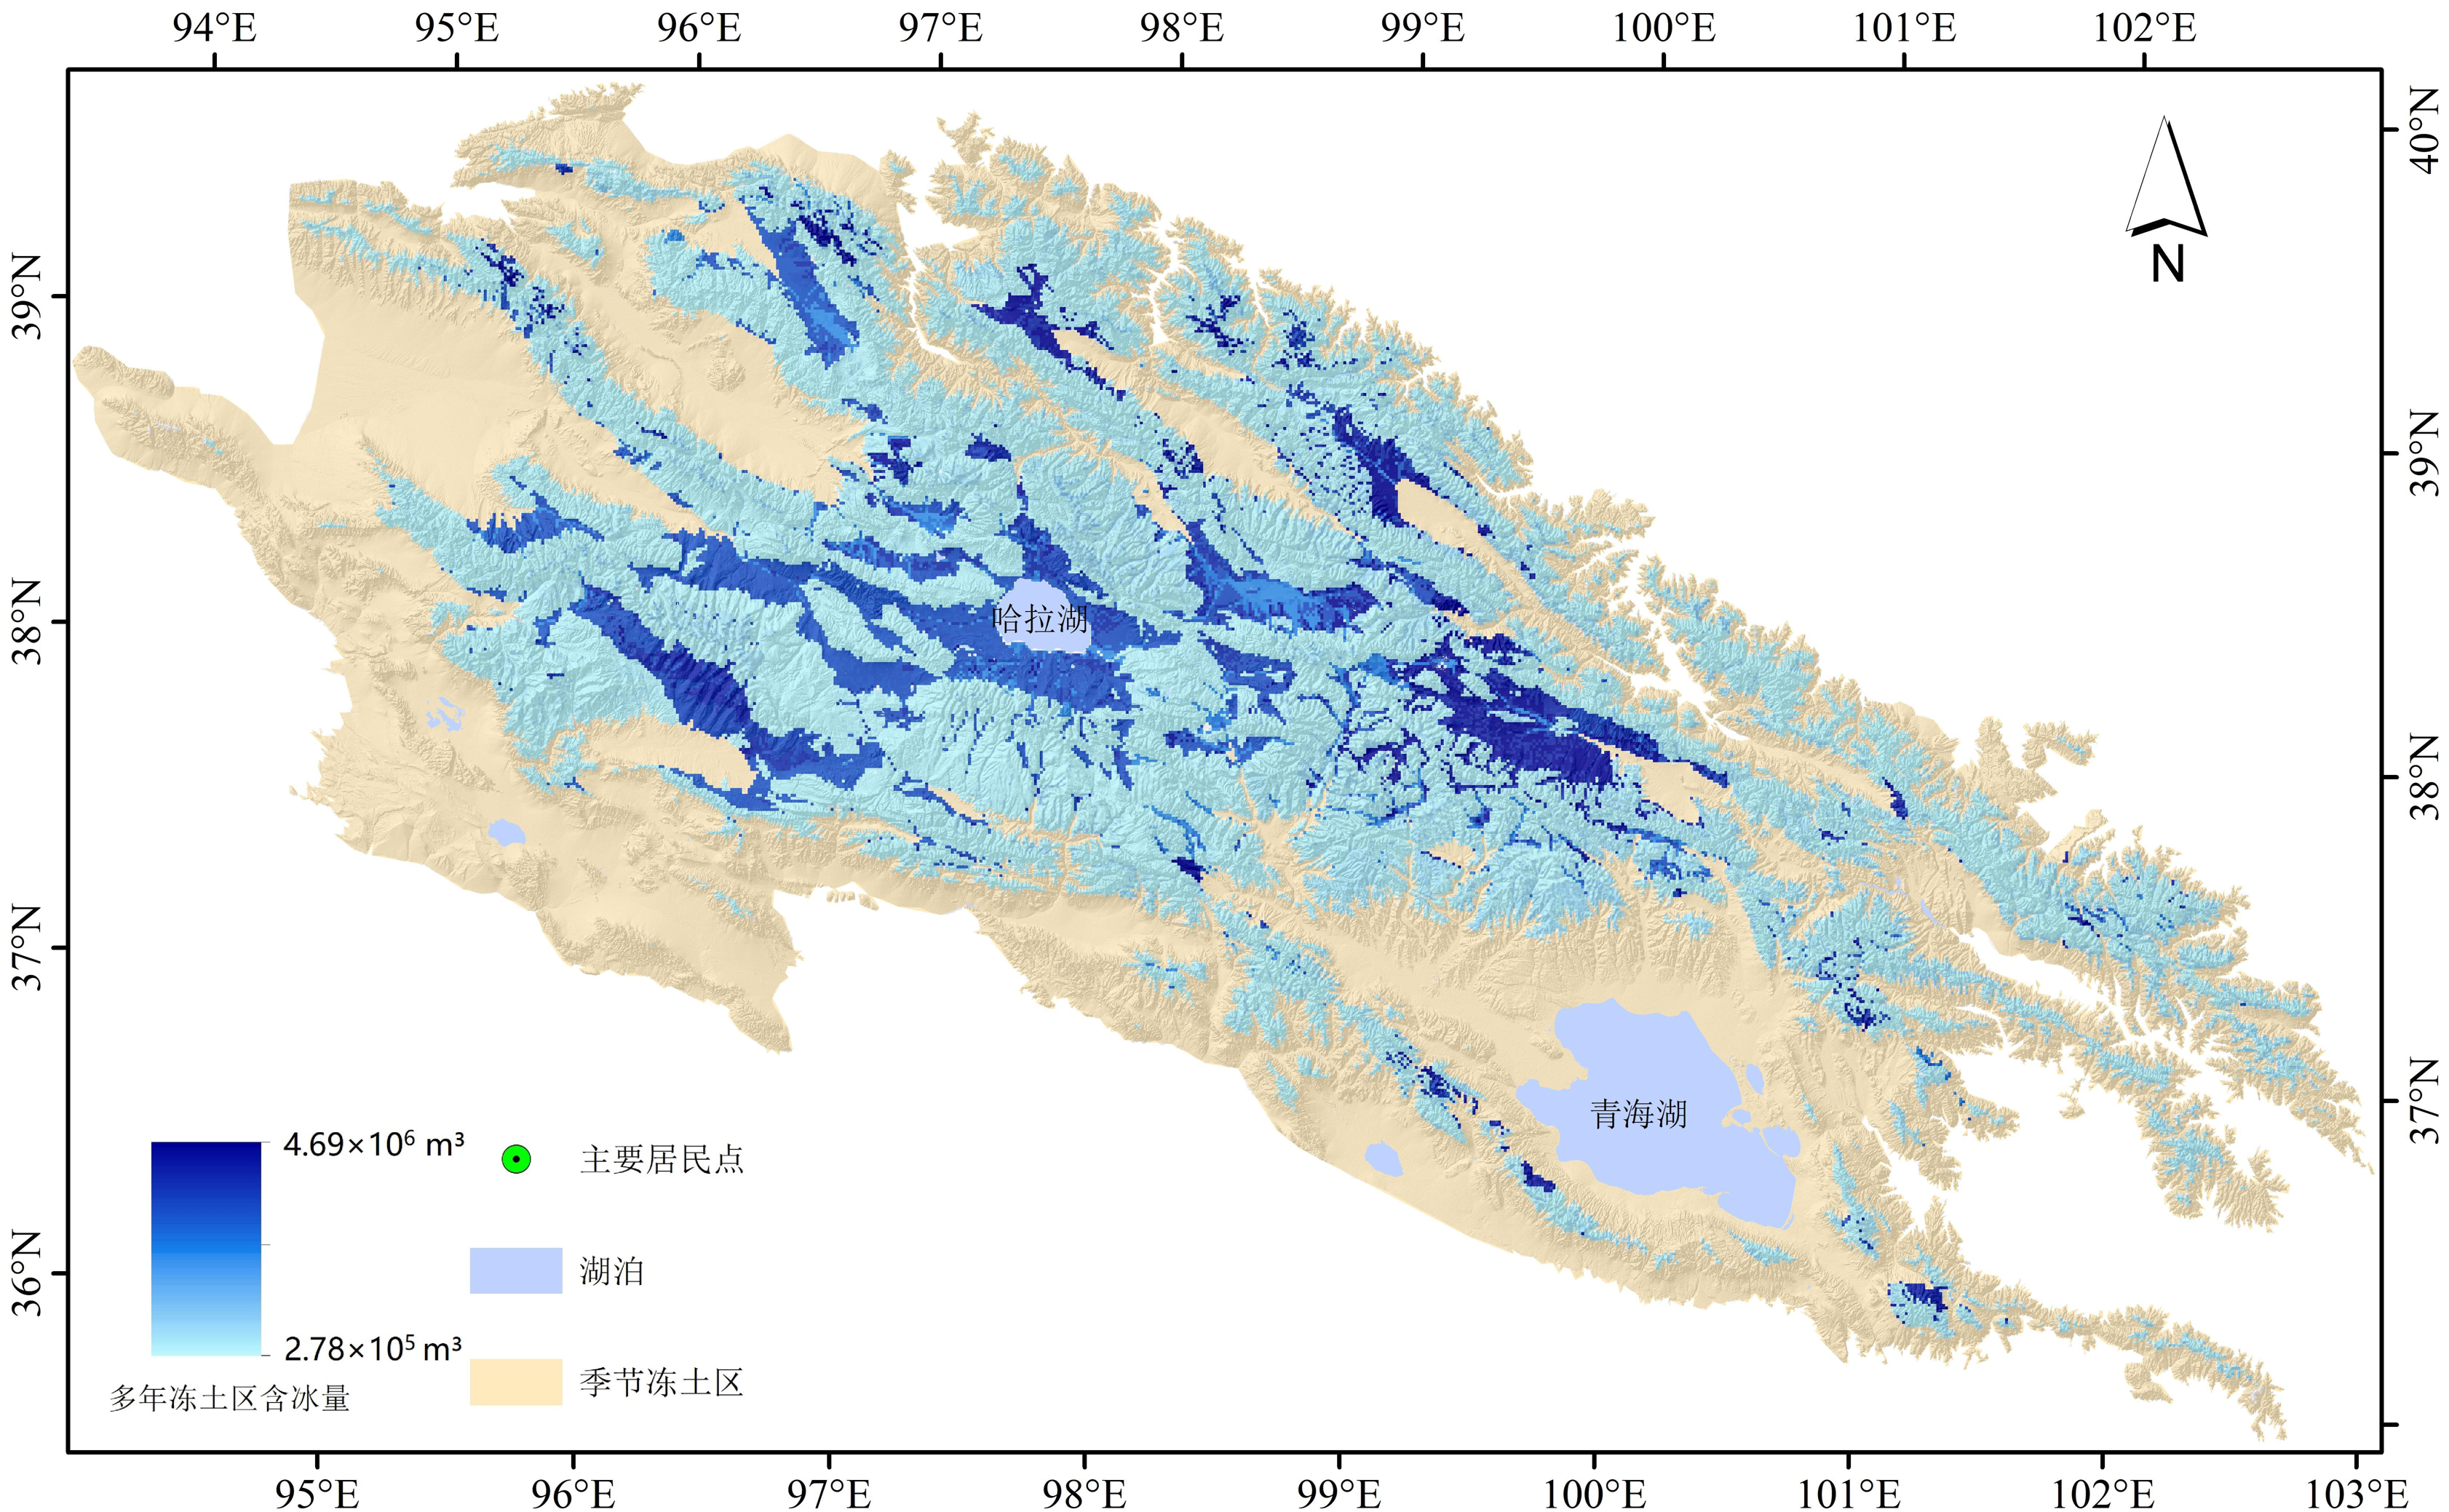 Distribution data of underground ice in permafrost regions of Qilian Mountains (2013-2015)